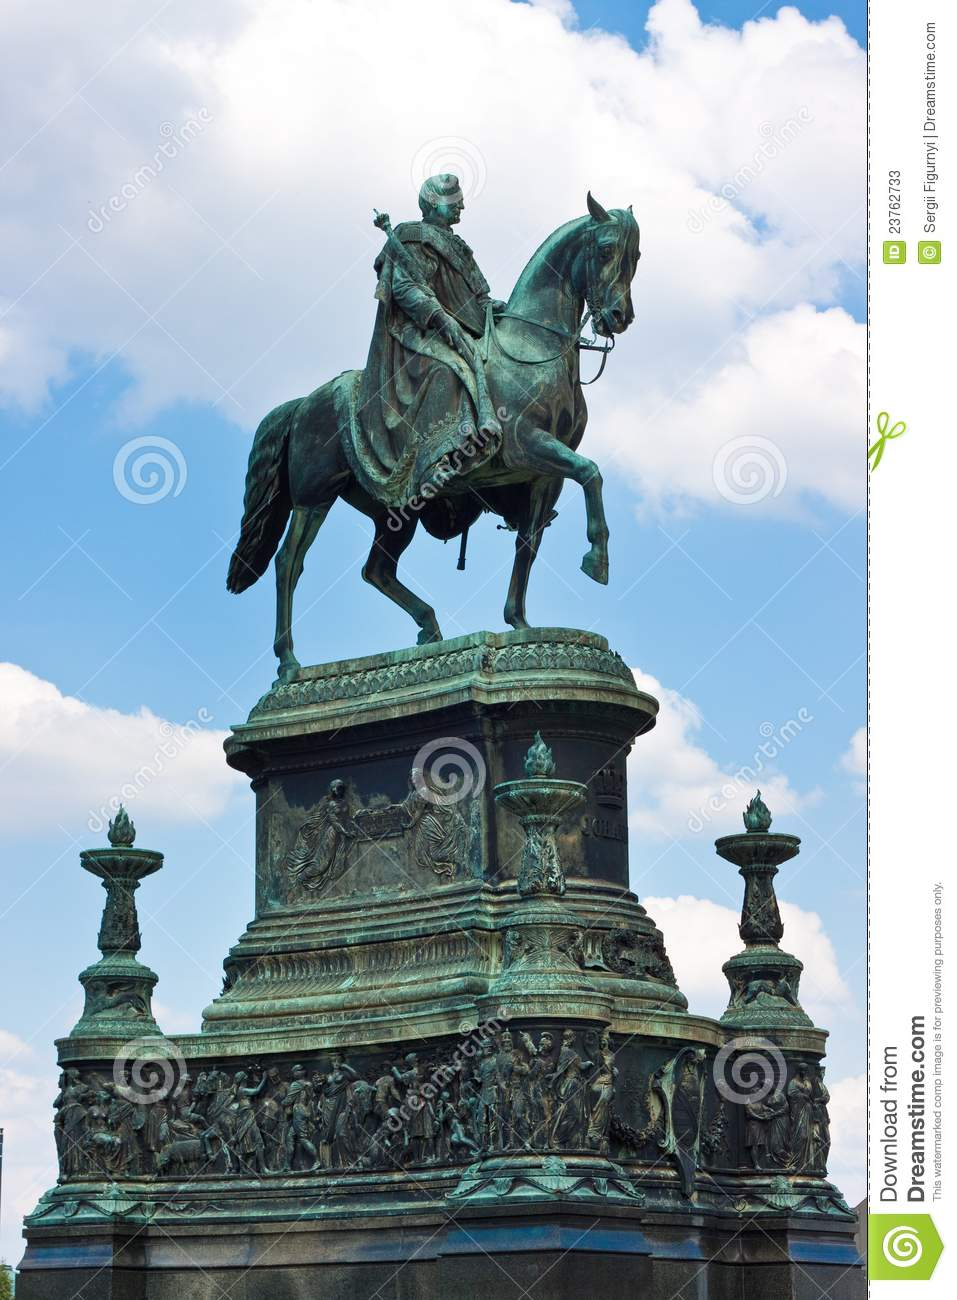 Equestrian Statue Of King John In Dresden Germany Stock